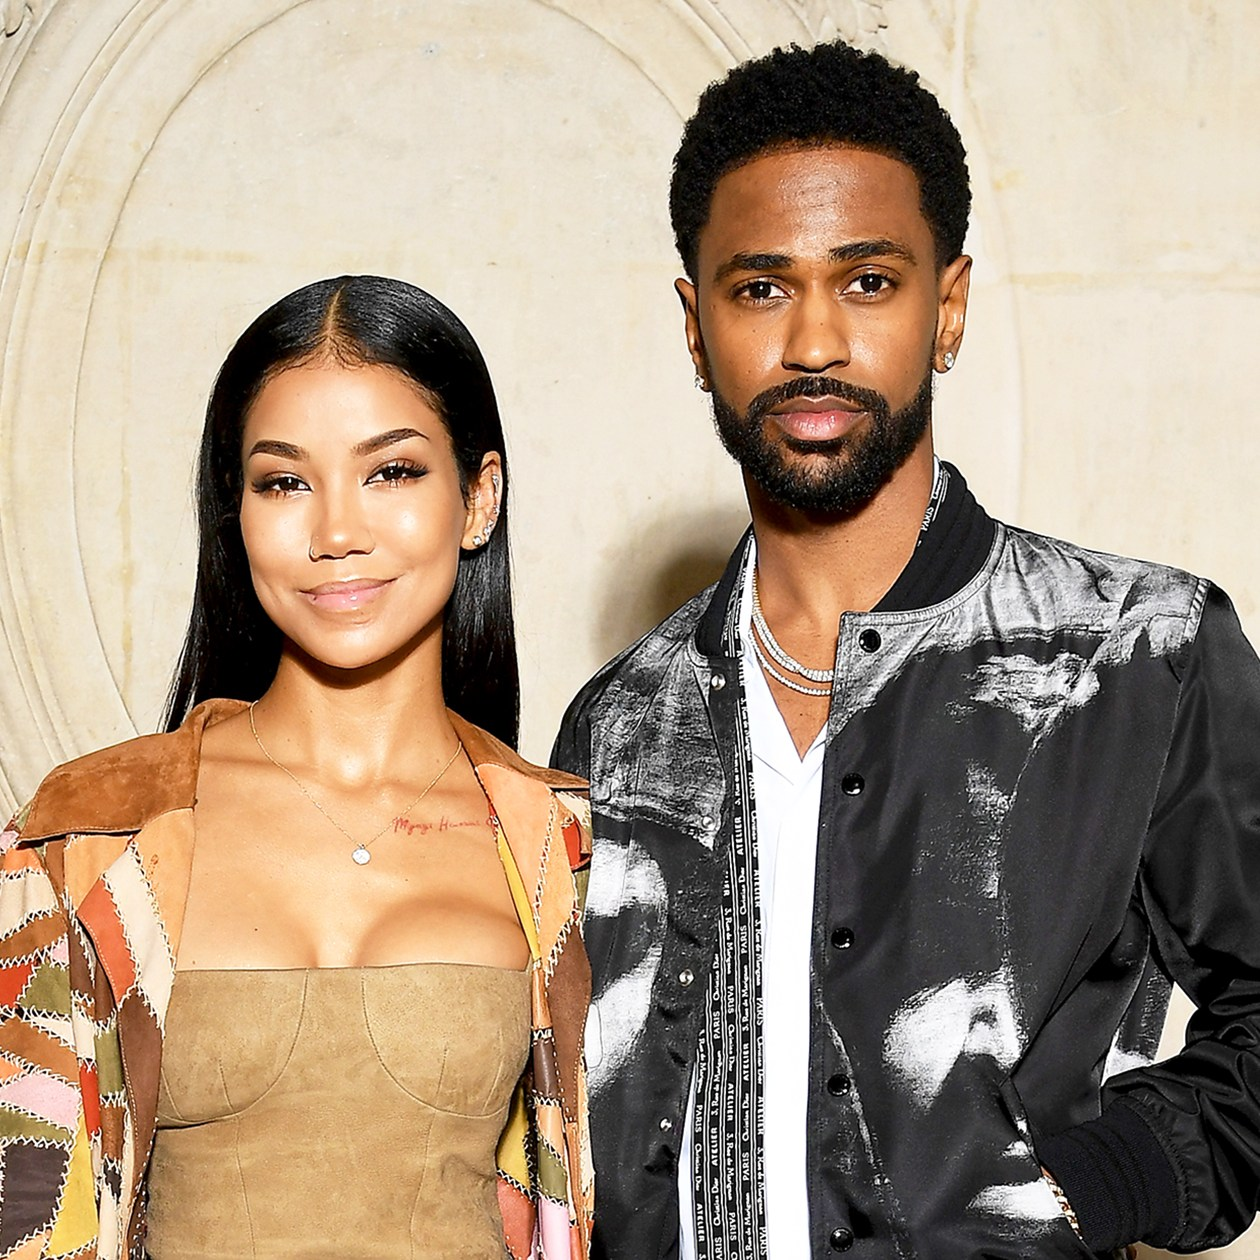 Jhene Aiko and Big Sean attend the Christian Dior Haute Couture Spring Summer 2018 show as part of Paris Fashion Week in Paris, France.